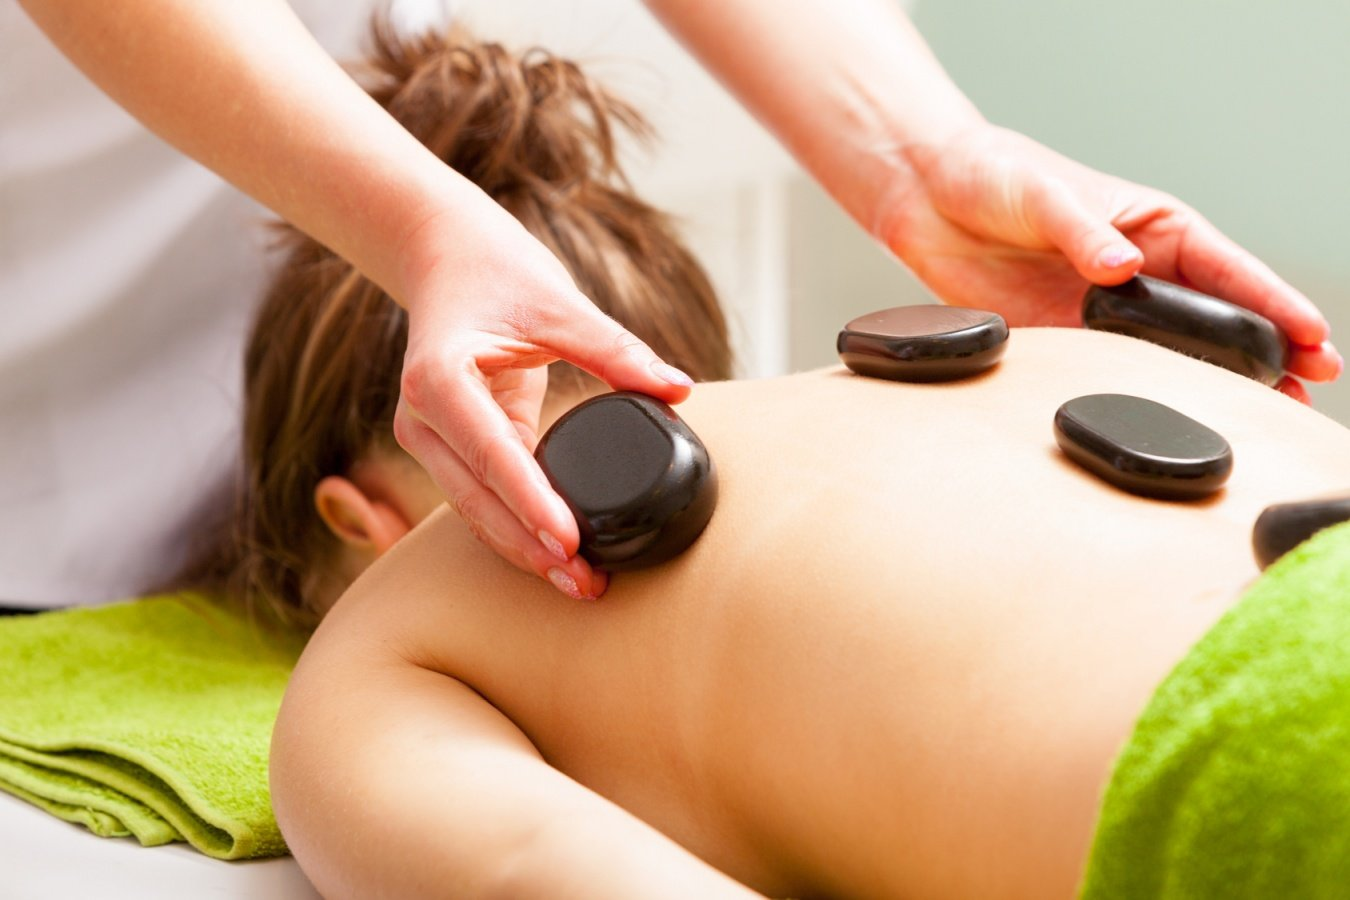 Wellness_i_SPA/Fotolia_58761479_Subscription_Monthly_M.jpg